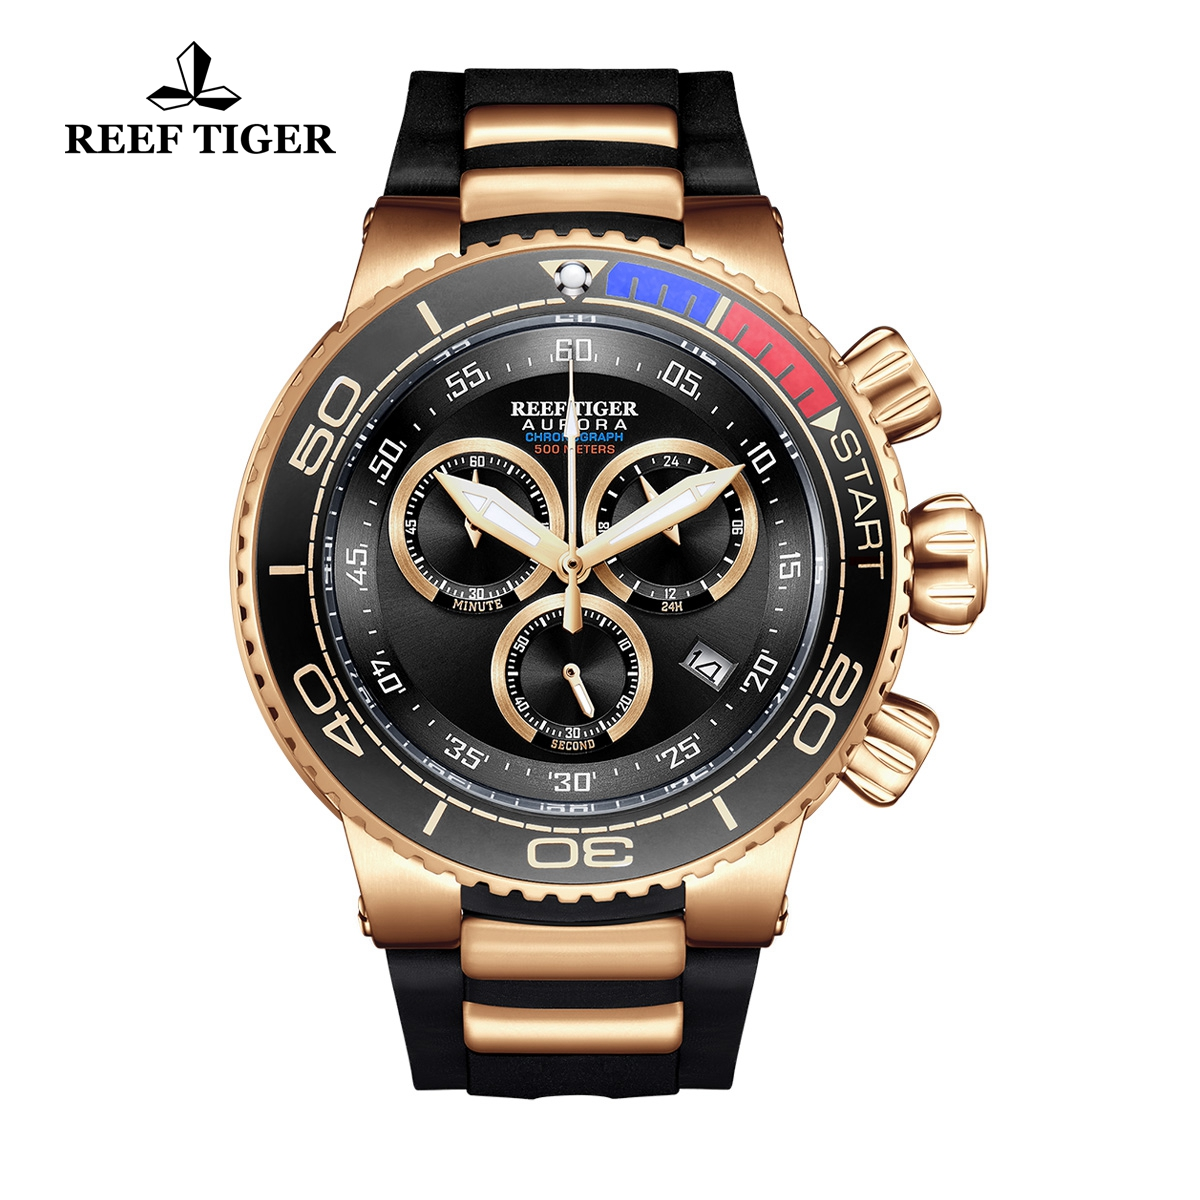 Reef Tiger Aurora Grand Ocean Fashion Rose Gold Watch Rubber Strap Black Dial Chronograph Quartz Watch RGA3168-PBB